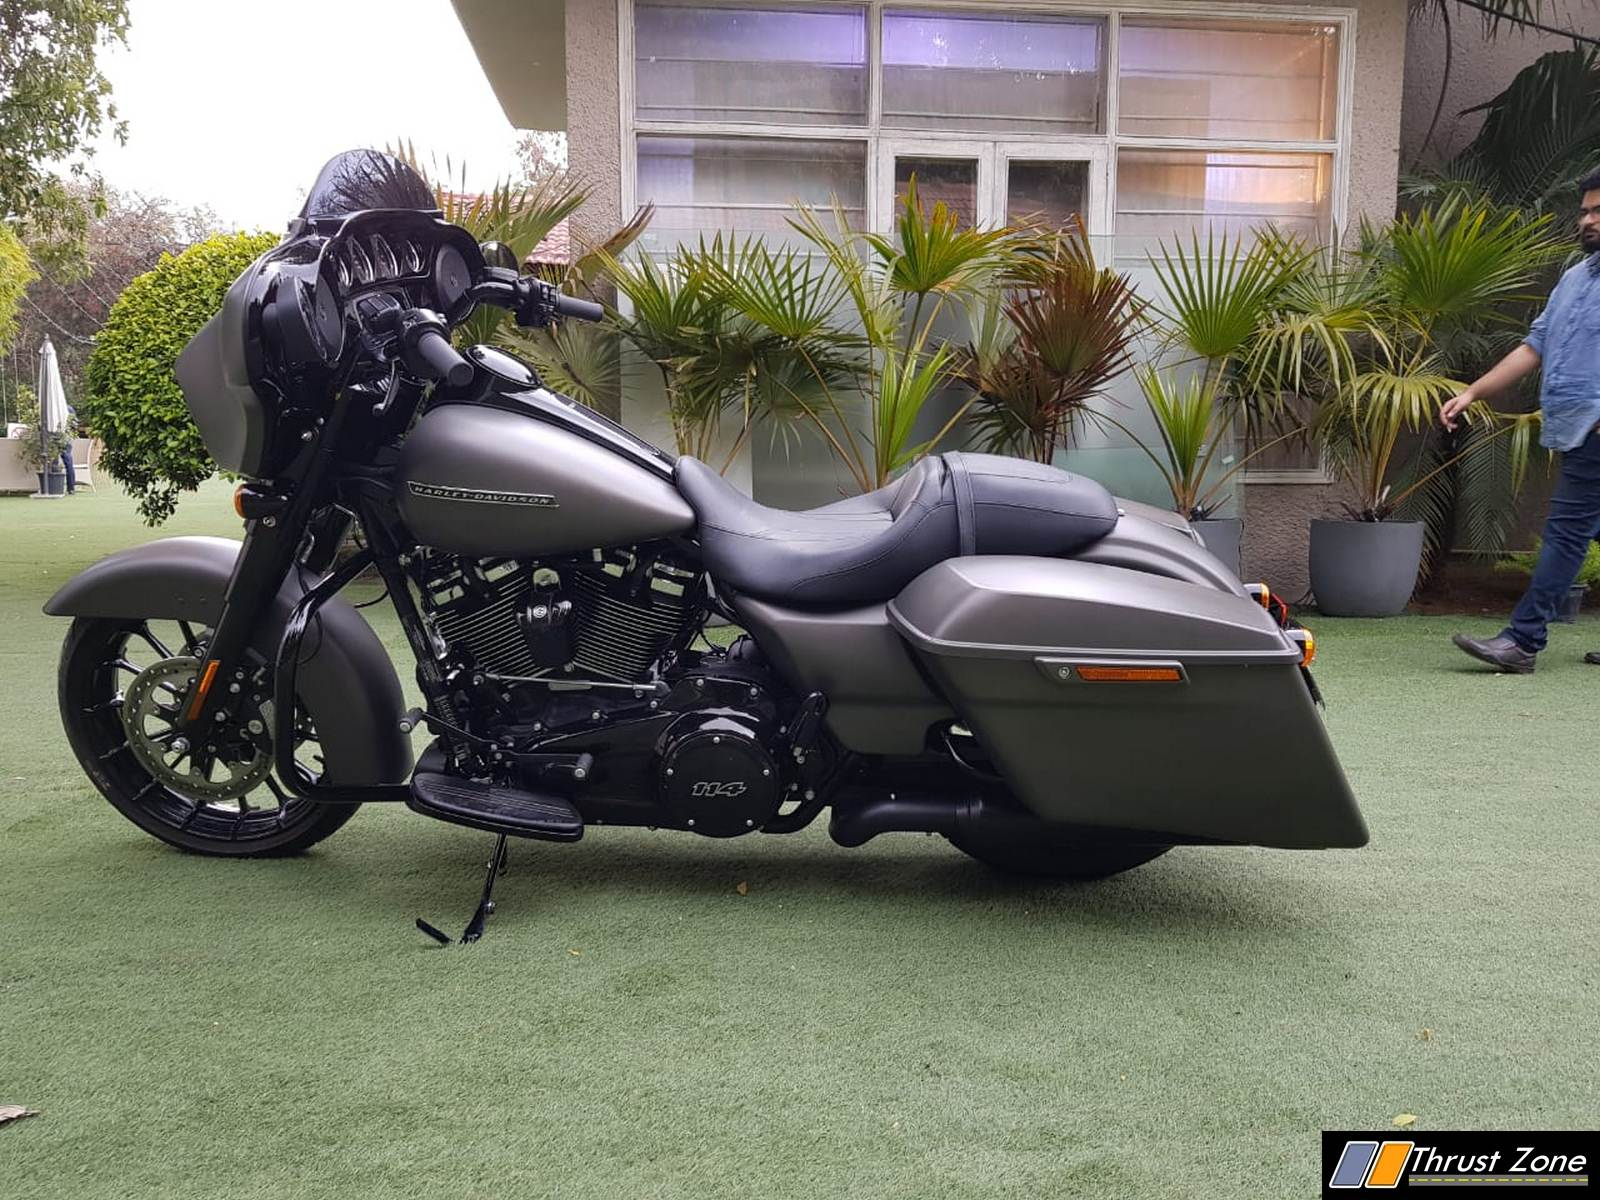 https://www.thrustzone.com/wp-content/uploads/2019/03/Harley-Davidson-street-glide-special-india-launch-10.jpg